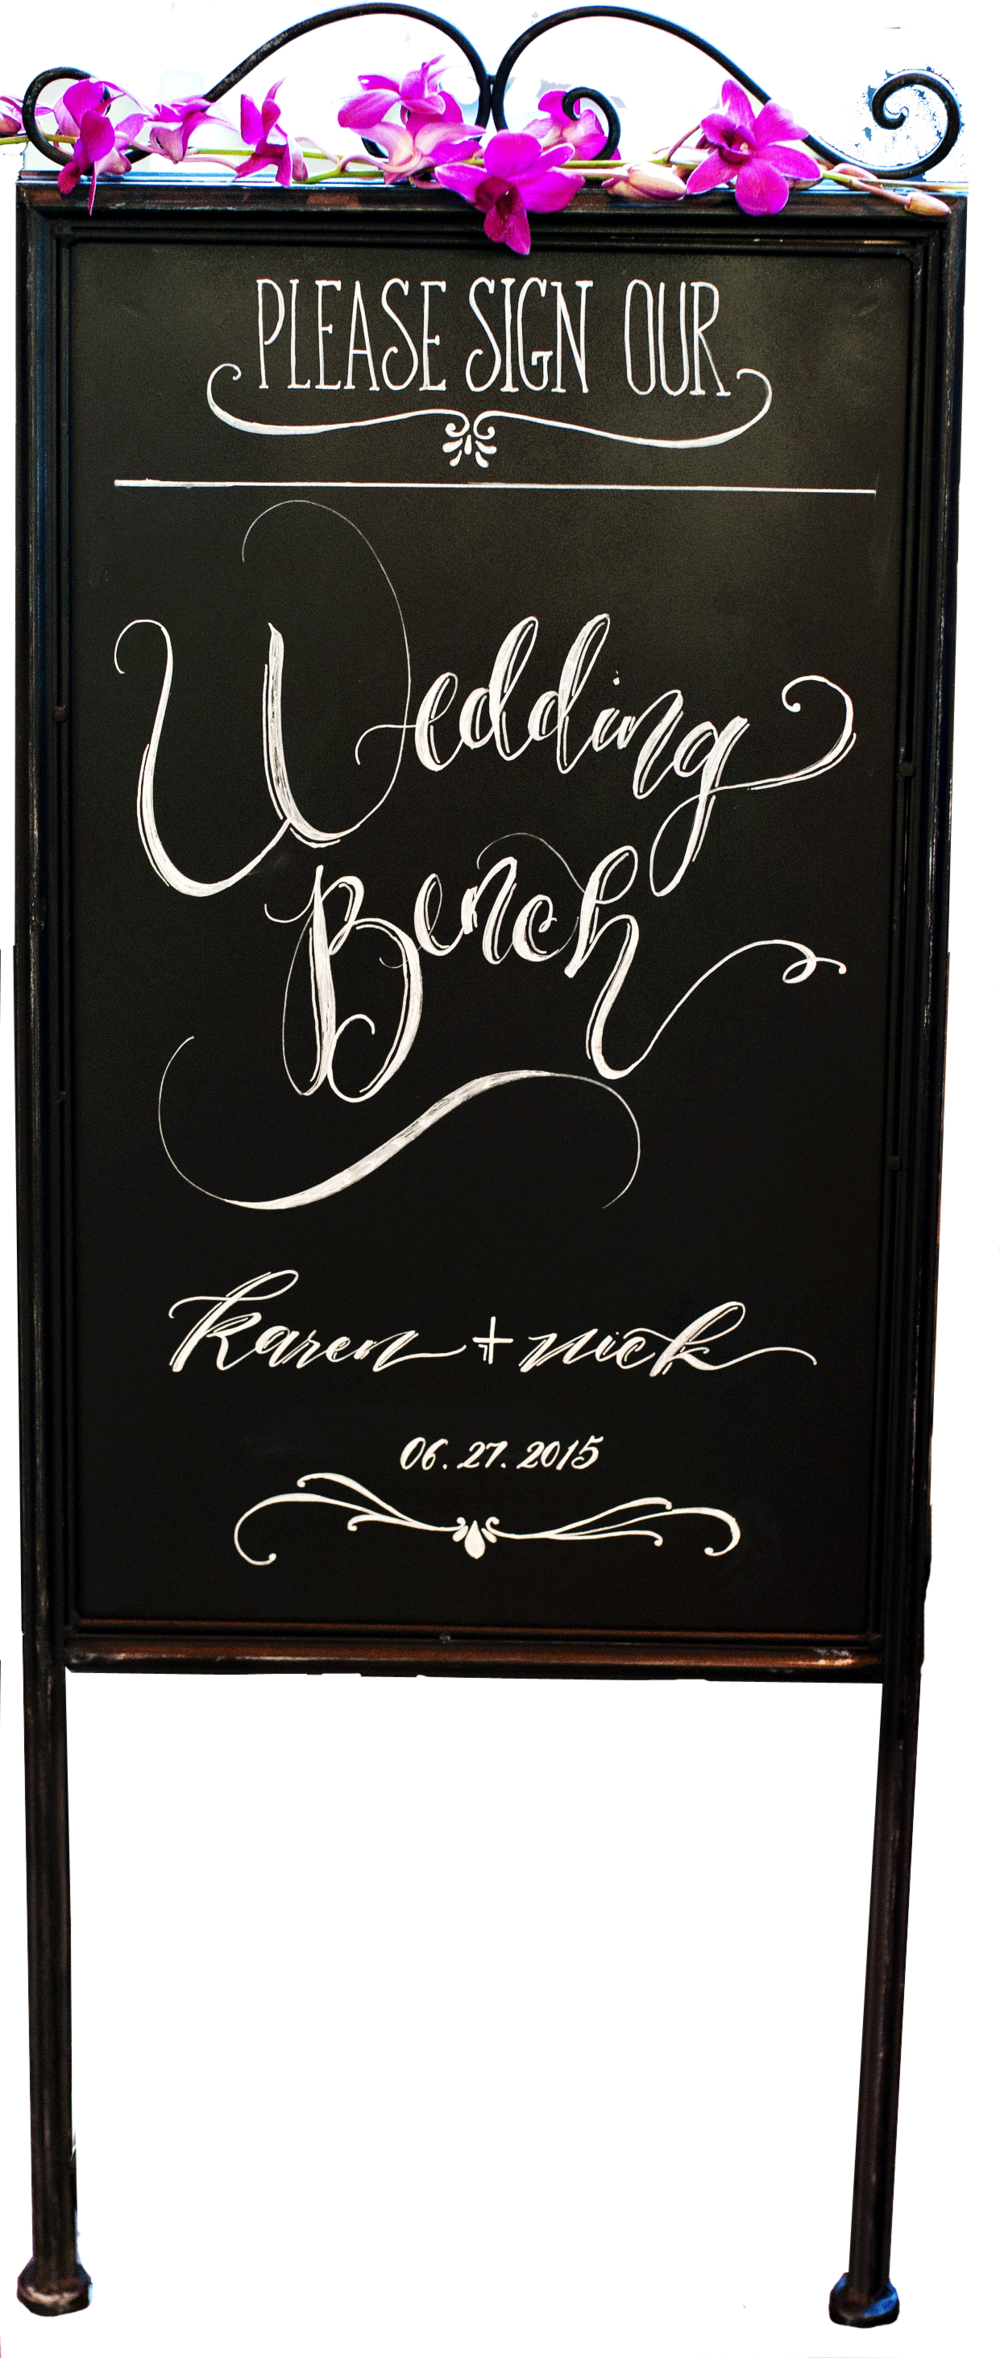 Metal chalkboard sandwich board. 2-sided. $25 | Item #A009 | Qty. in stock: 1